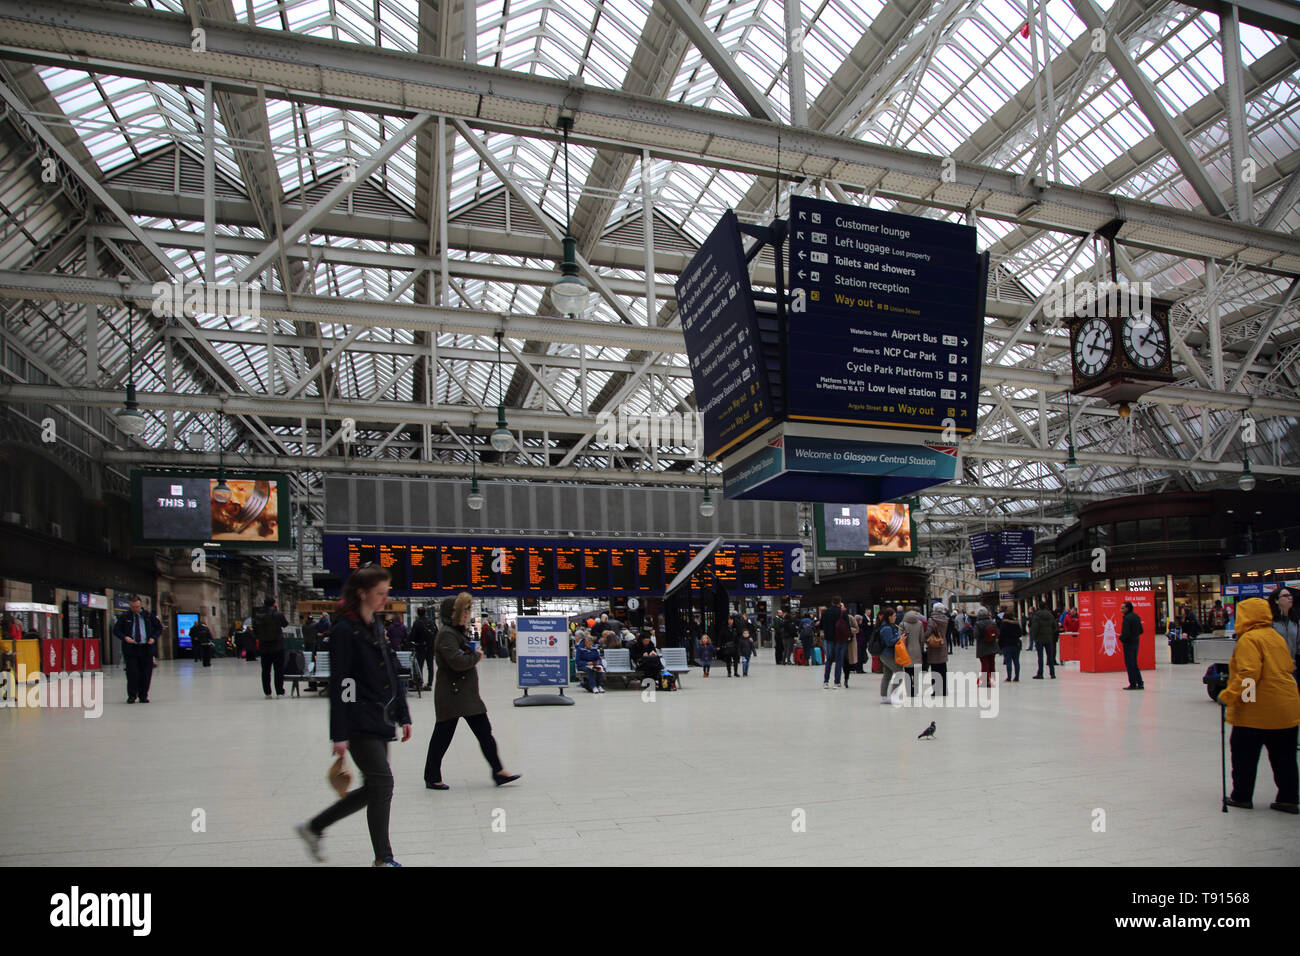 Glasgow Scotland Glasgow Central Station Concourse - Stock Image